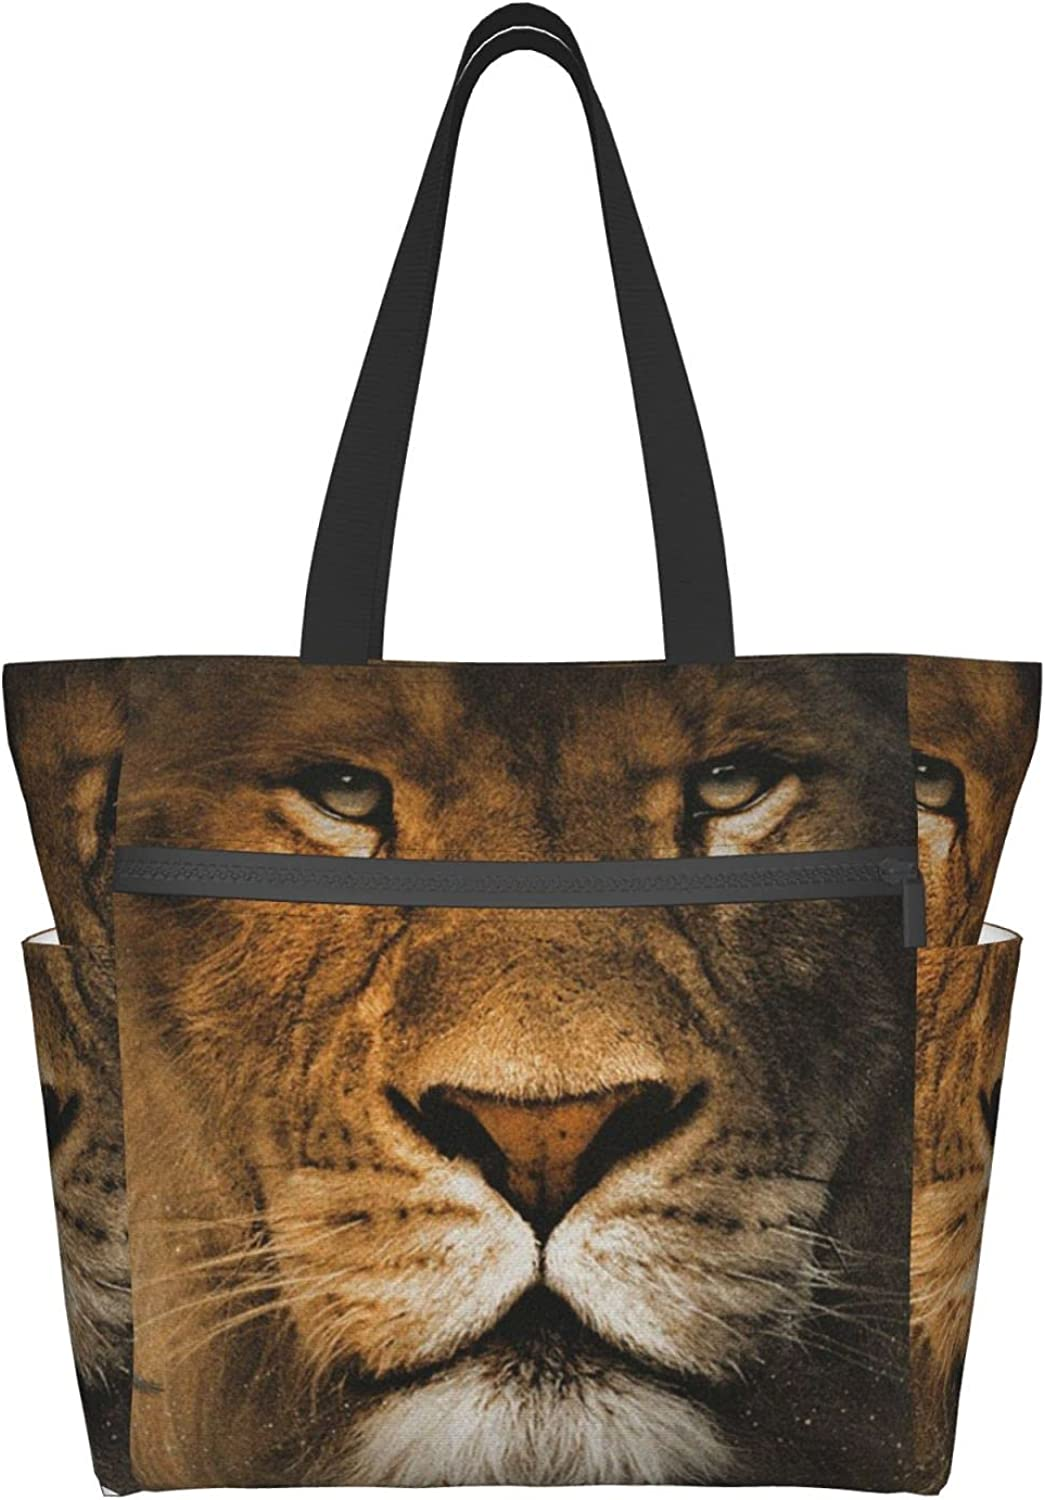 Tote Challenge the lowest price Bag with sold out Zipper for Women Daily Bags Handbag Lion Purse